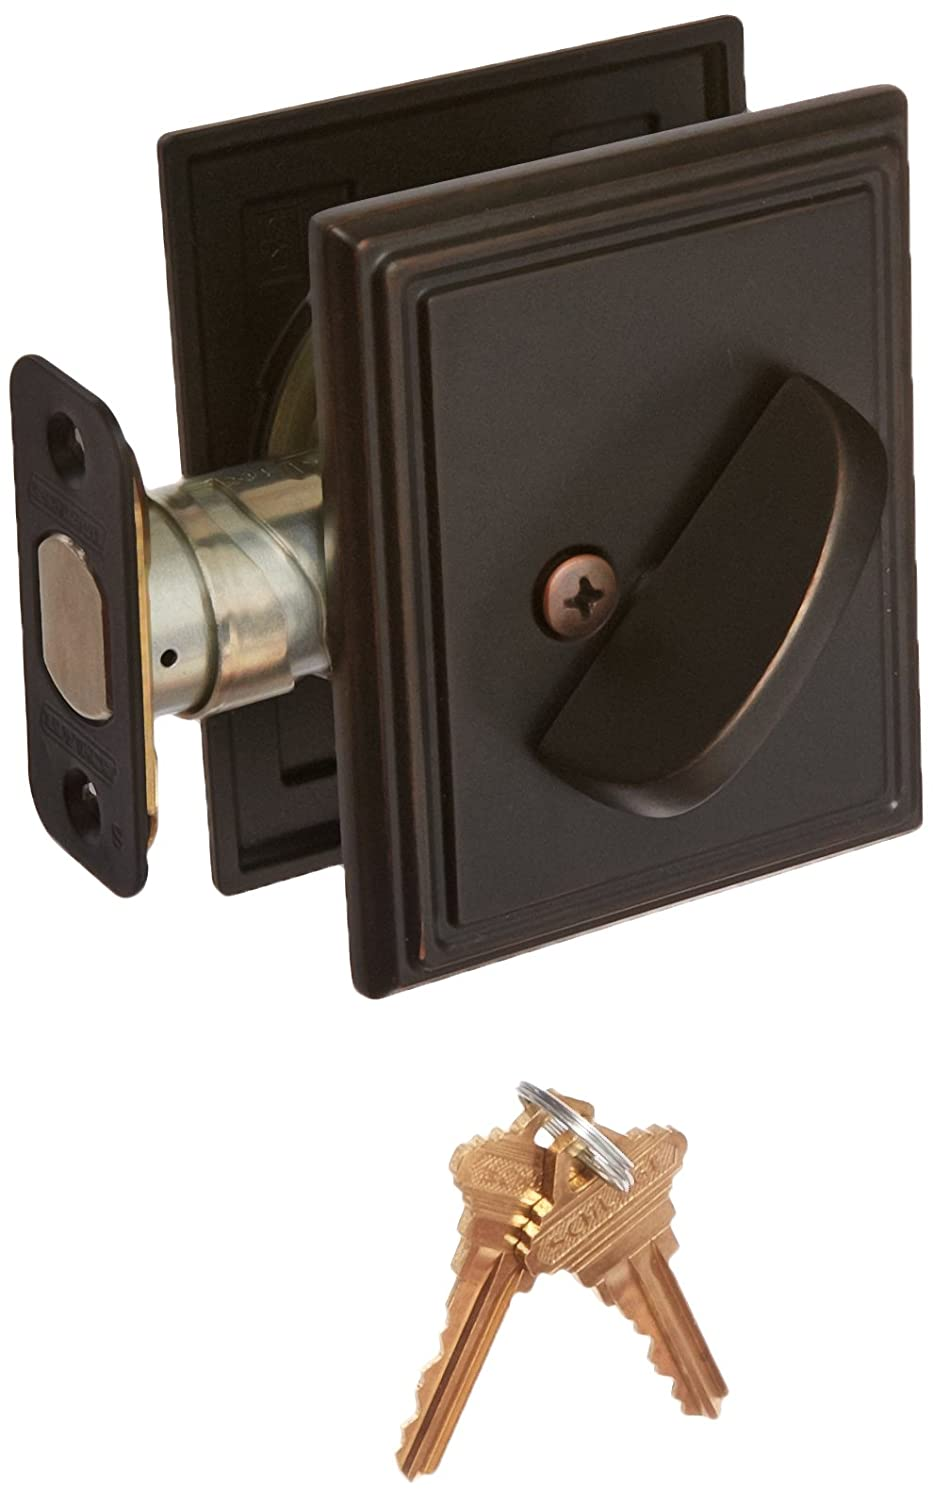 Schlage Lock Company B60ADD716 Single Cylinder Grade 1 Deadbolt with Decorative Addison Rose, Aged Bronze